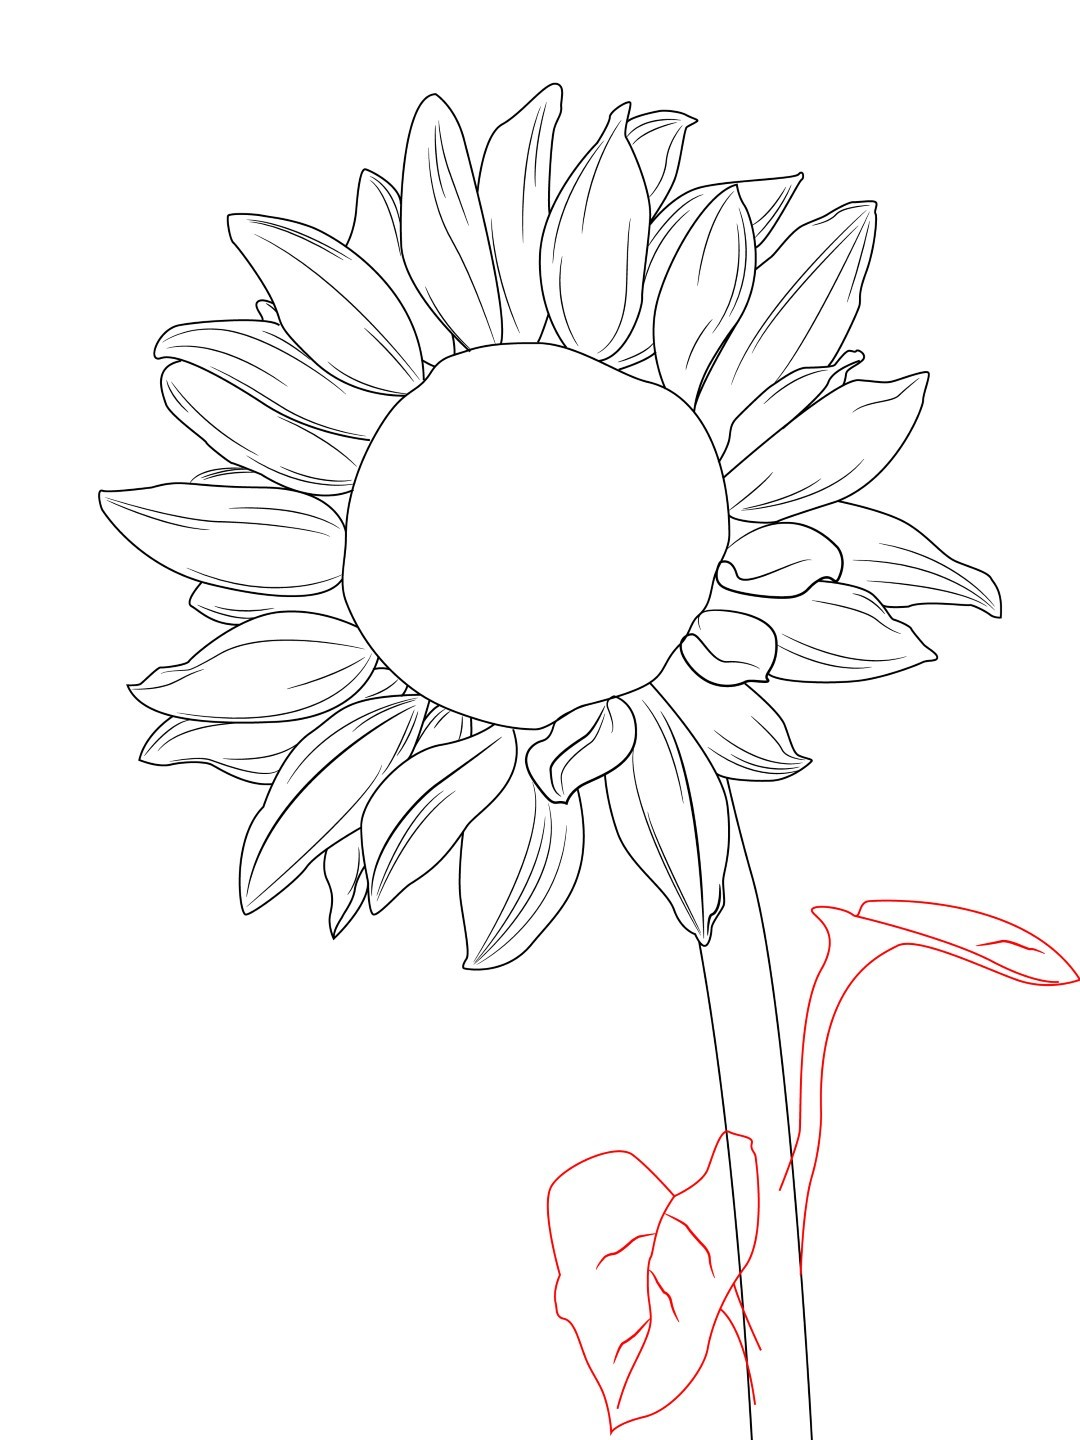 1080x1440 How To Draw A Sunflower